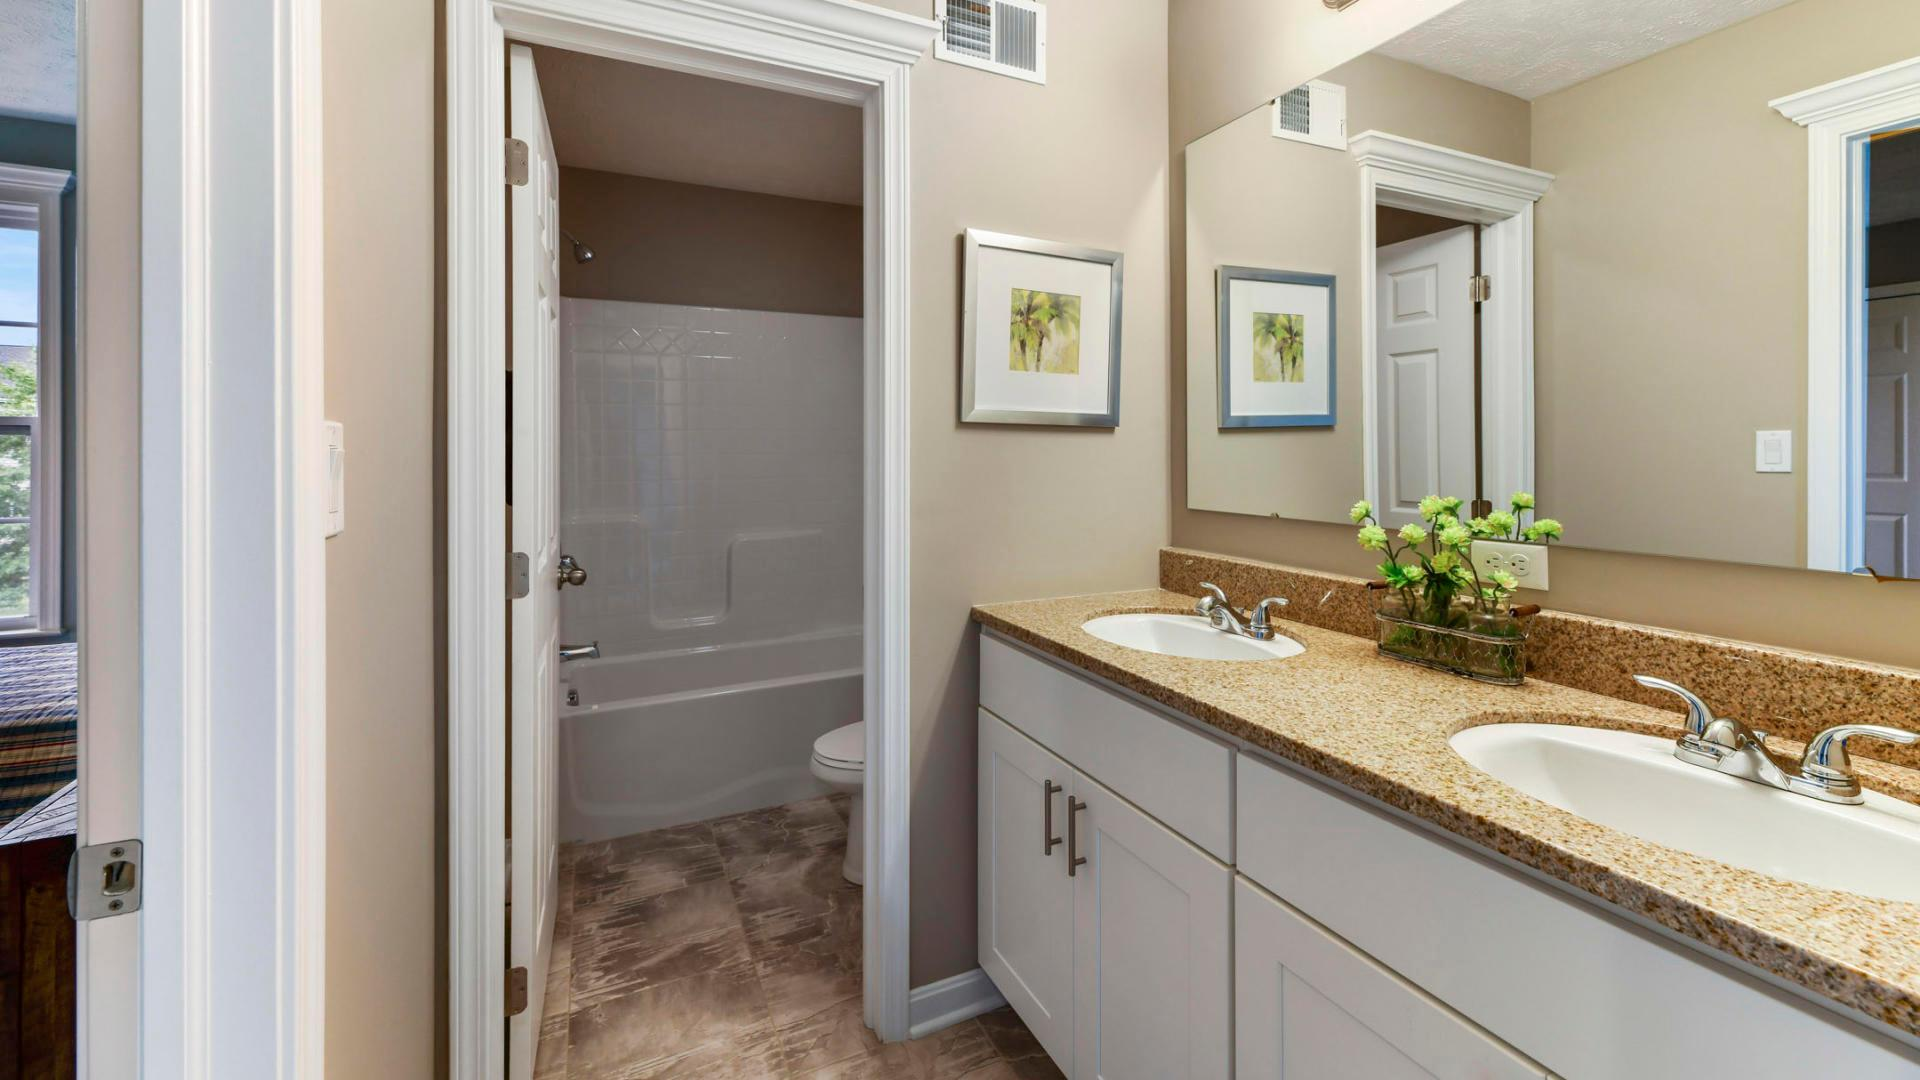 Bathroom featured in the Carlisle By Maronda Homes in Pittsburgh, PA